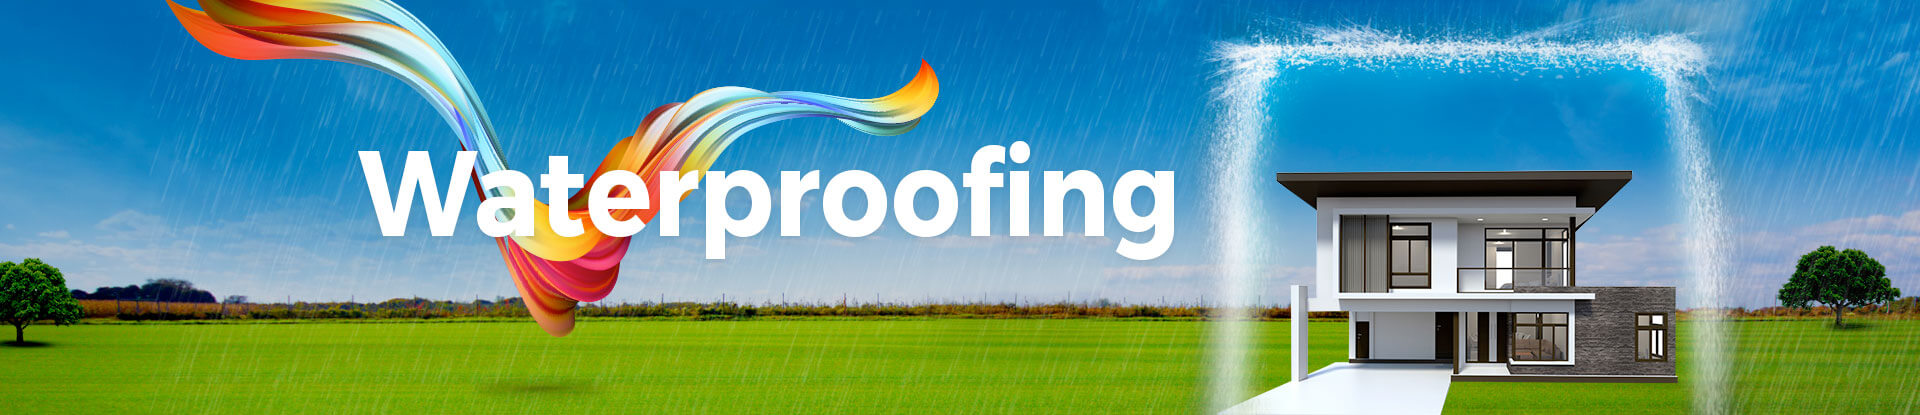 Waterproofing Compounds